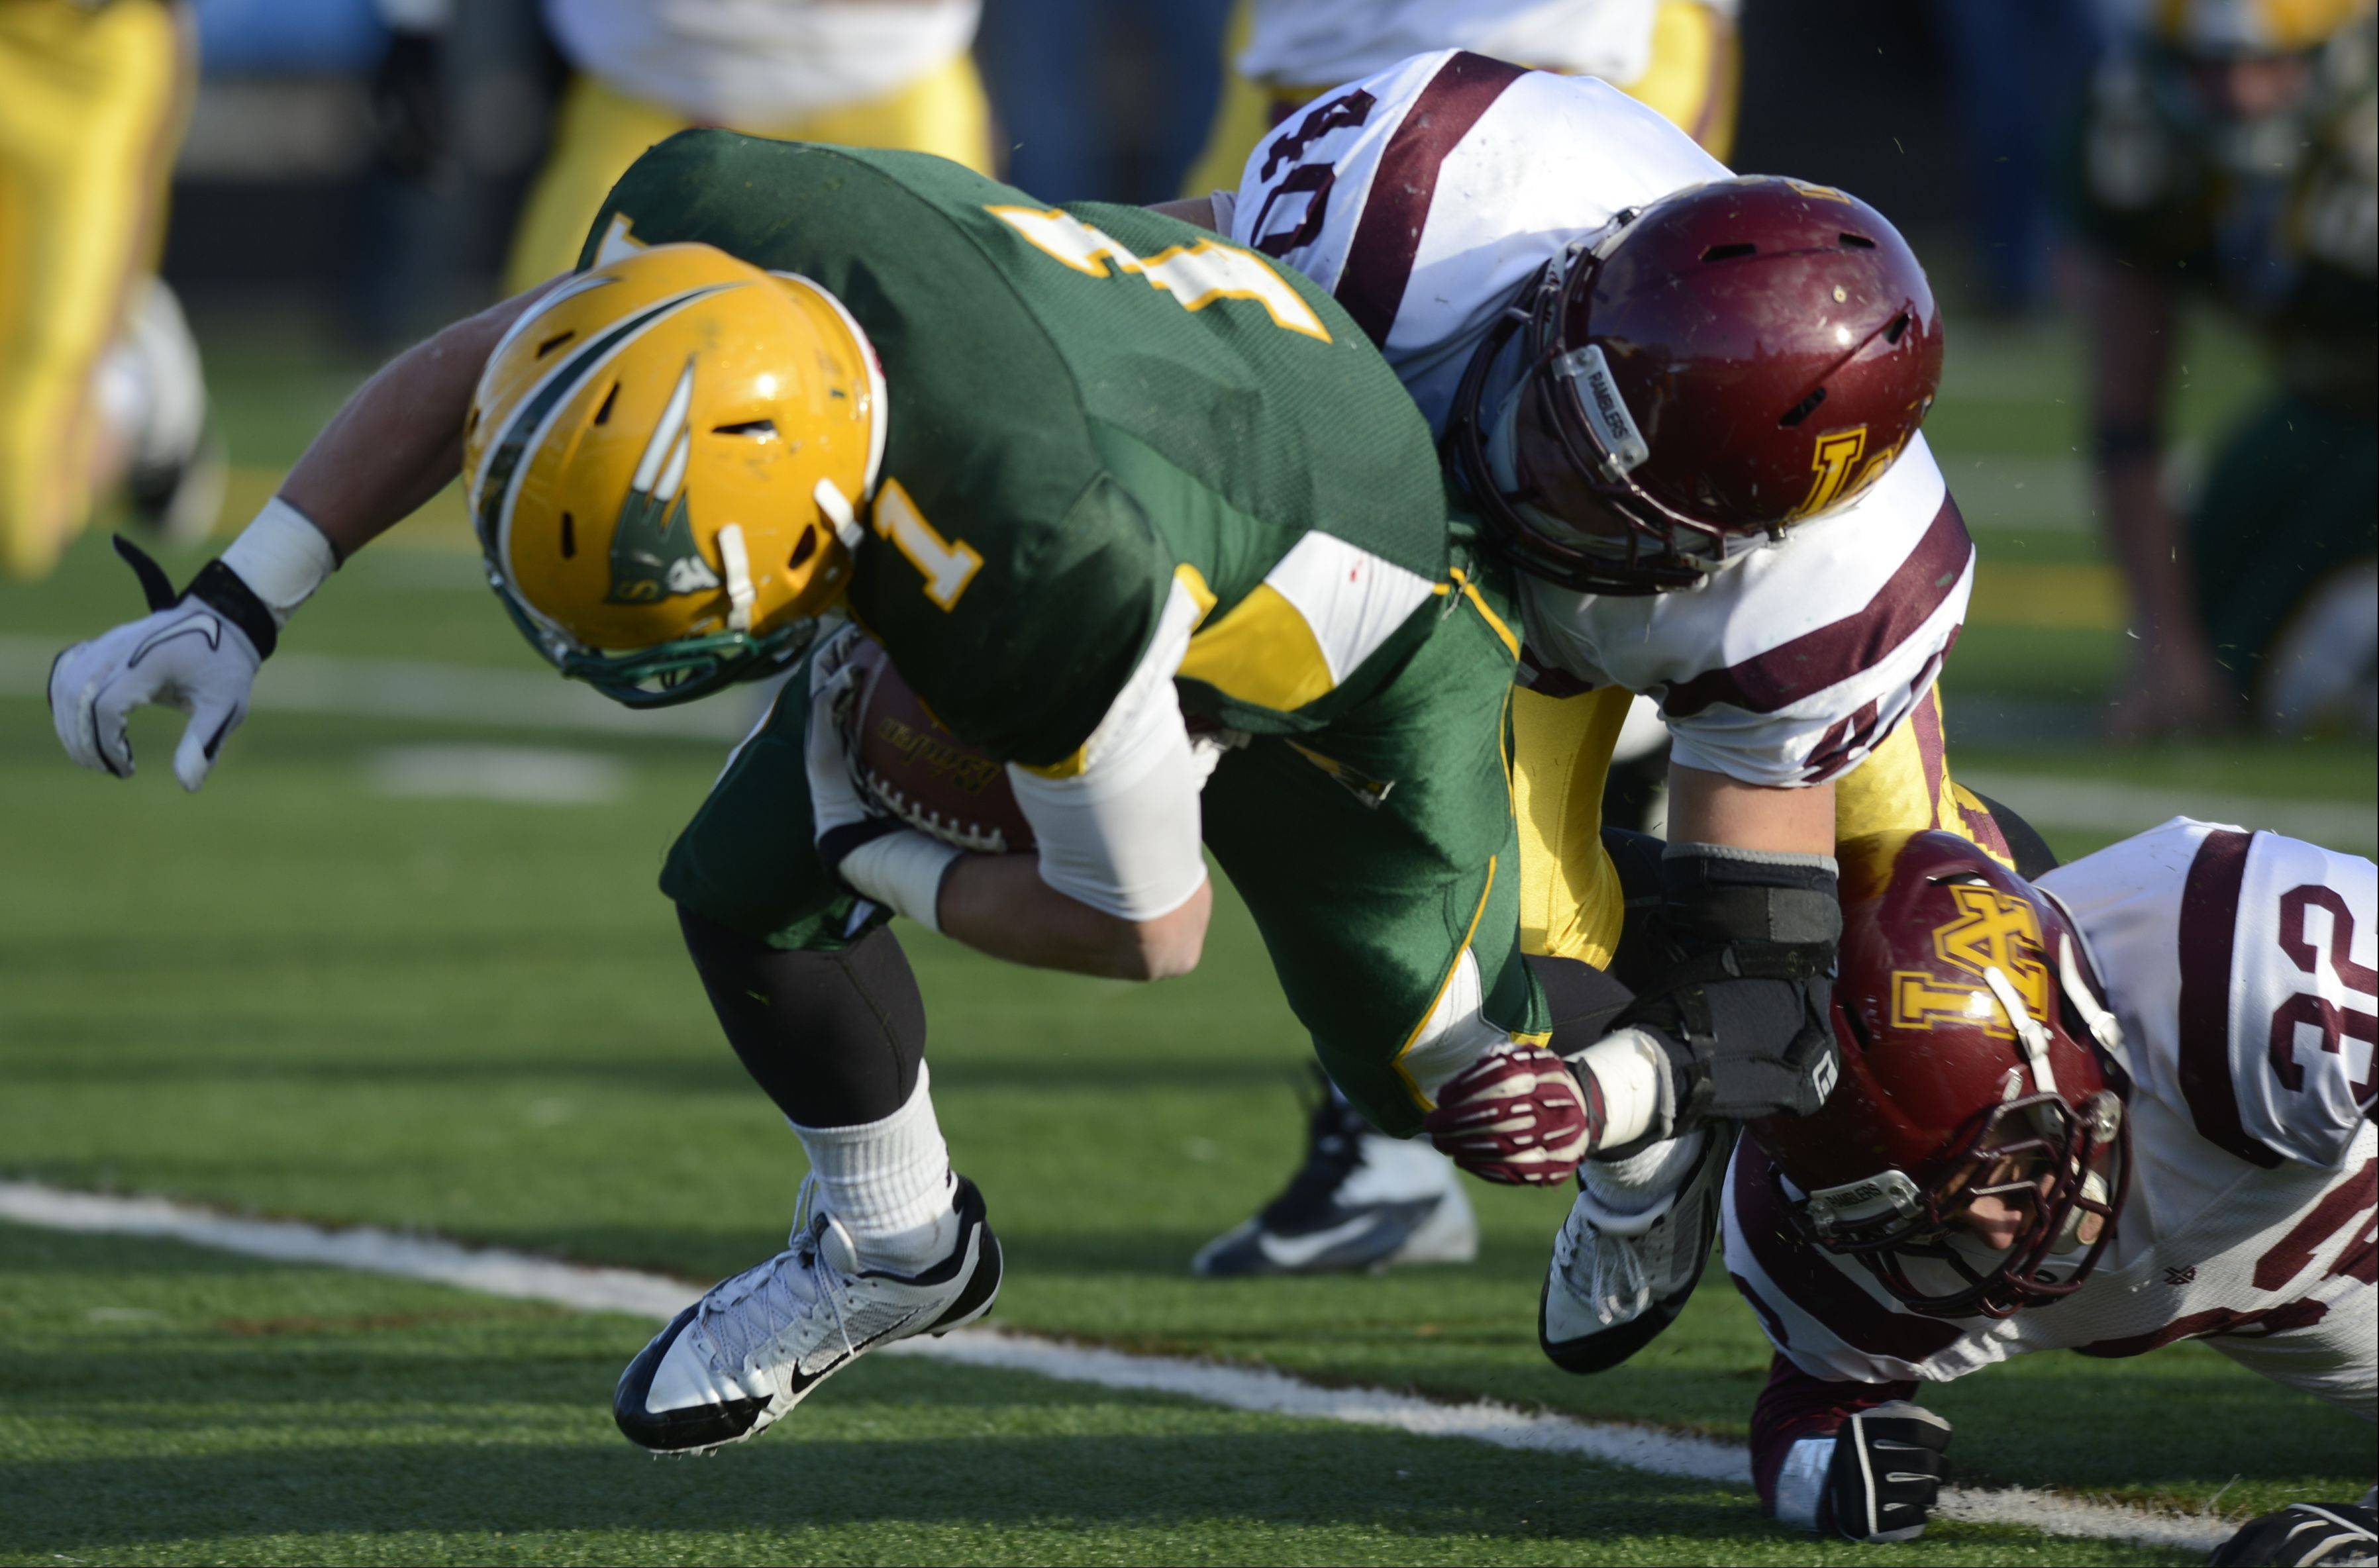 Playoffs � Semifinal � Photos from the Loyola Academy at Stevenson Class 8A football playoff game on Saturday, Nov. 23 in Lincolnshire.